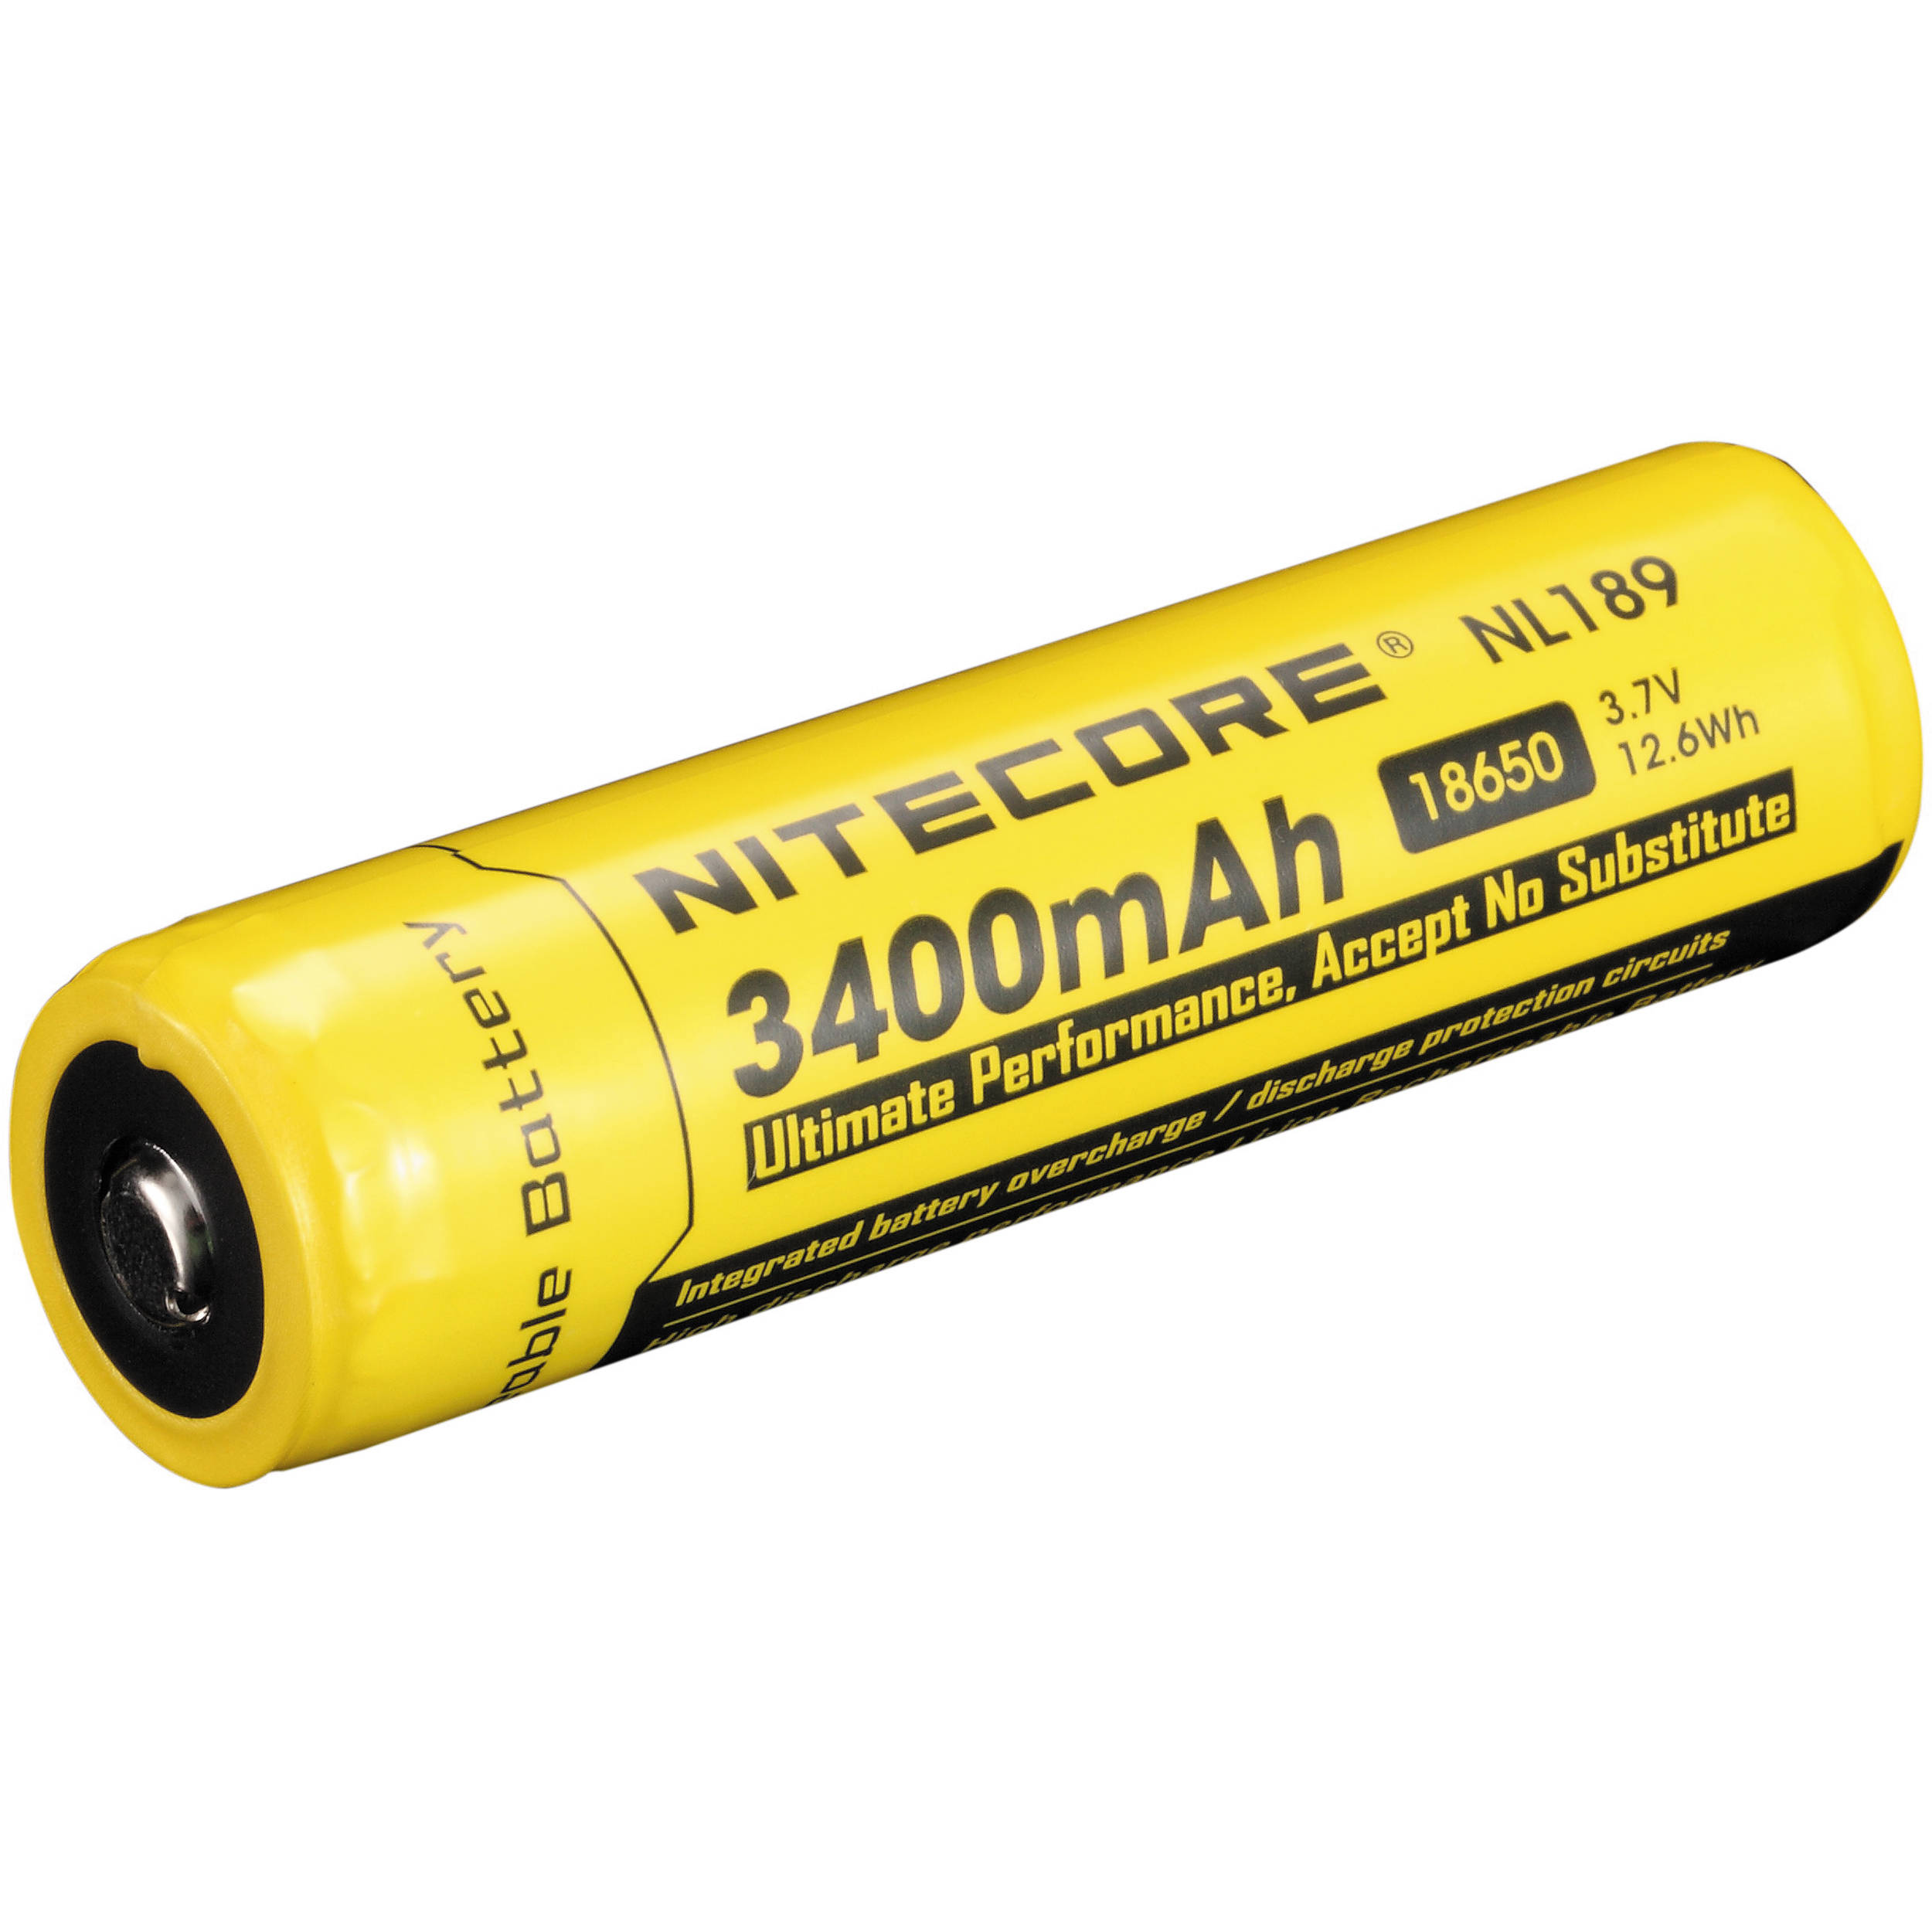 nitecore 18650 li ion rechargeable battery 3 7v 3400mah nl189. Black Bedroom Furniture Sets. Home Design Ideas